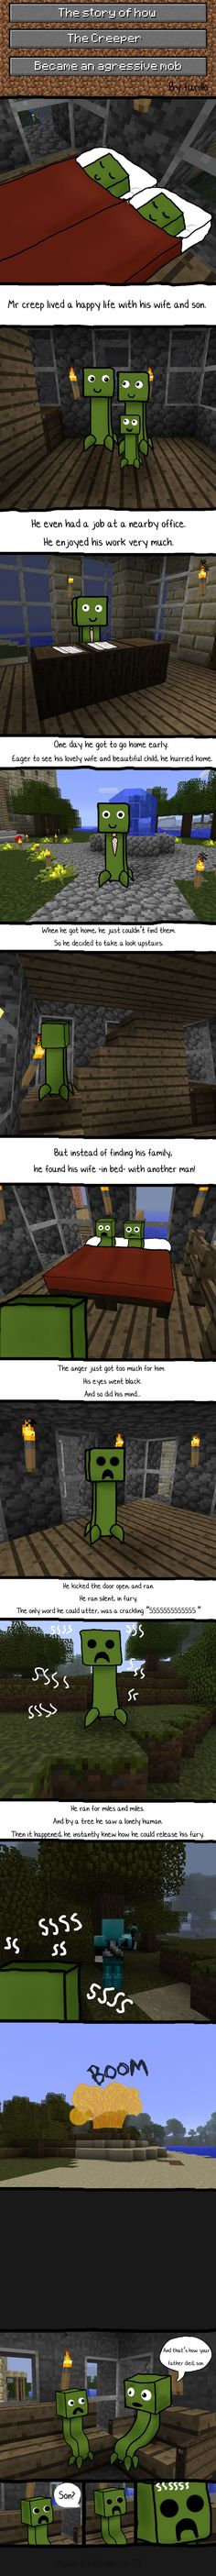 Minecraft Comic. Sad story :(